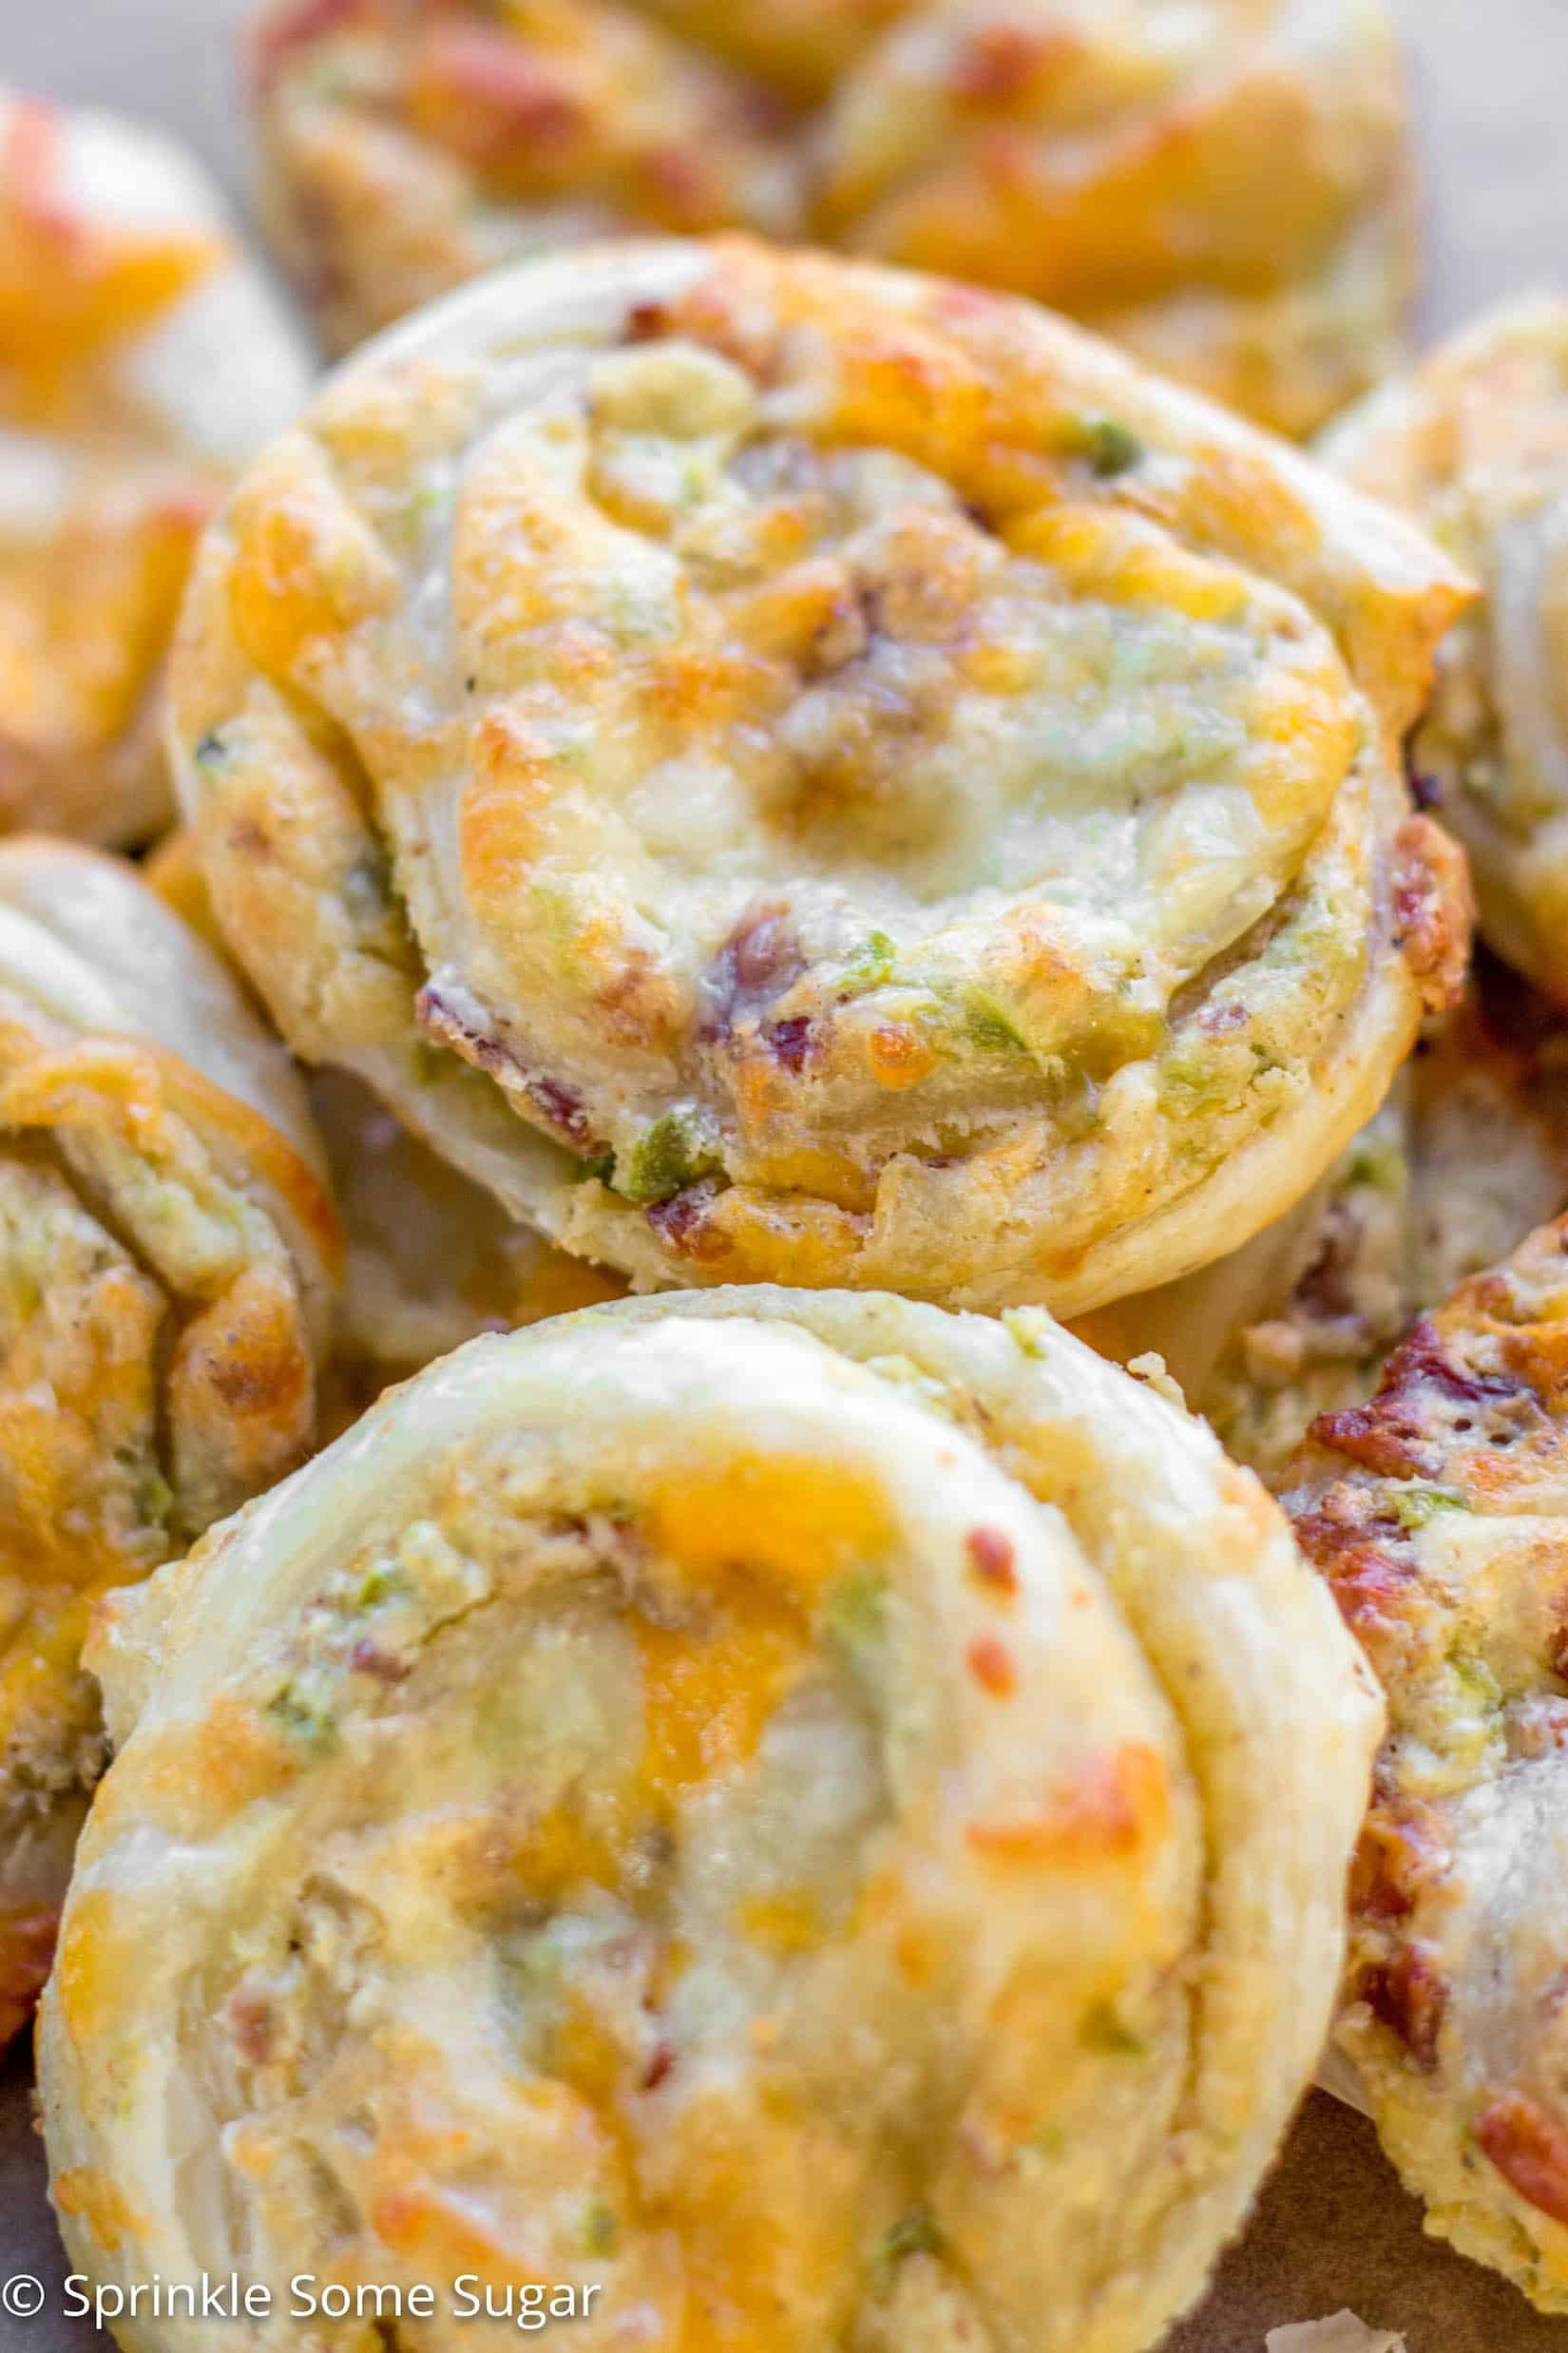 Cheesy Jalapenño Popper Pinwheels - These cheesy jalapeño popper pinwheels incorporate everything you love about a traditional jalapeño popper, all wrapped up in sweet puff pastry dough!